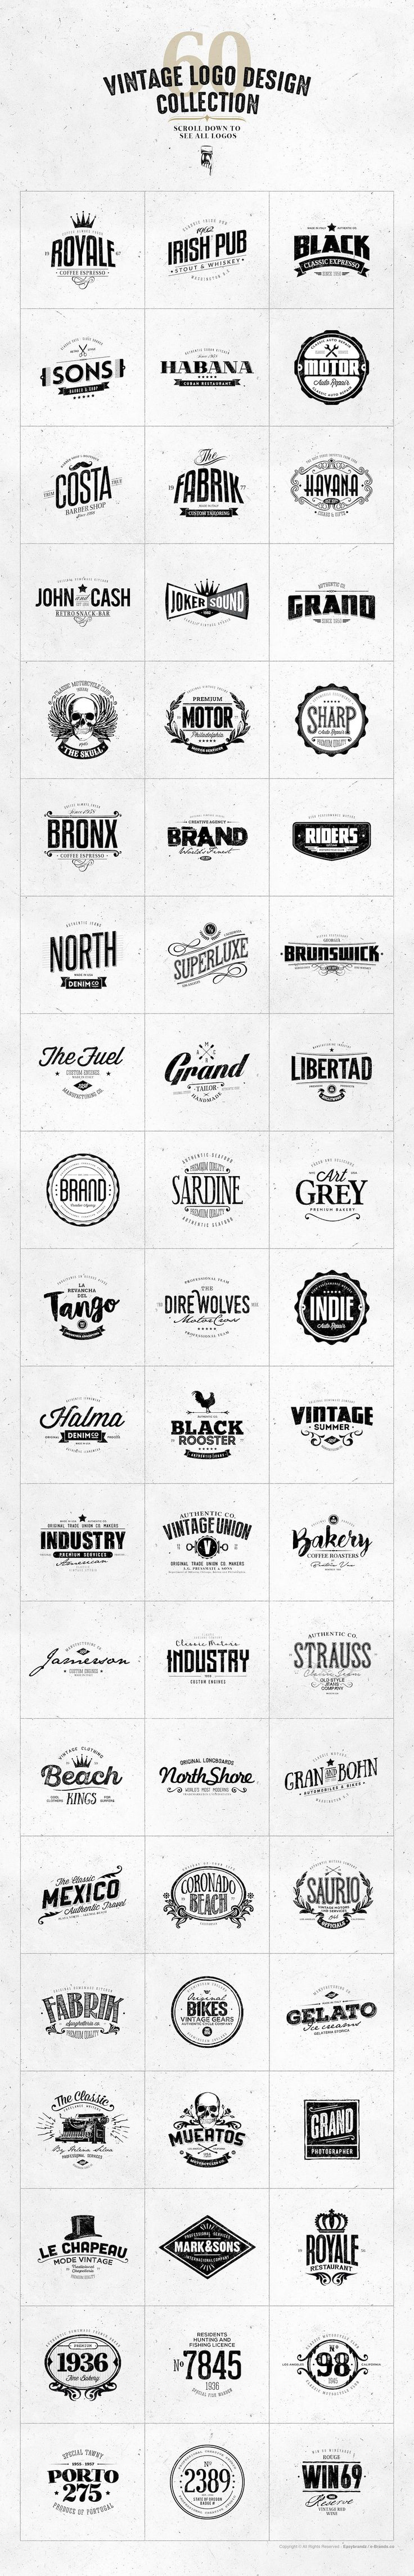 60 Vintage Logo Design Collection by Easybrandz on @creativemarket